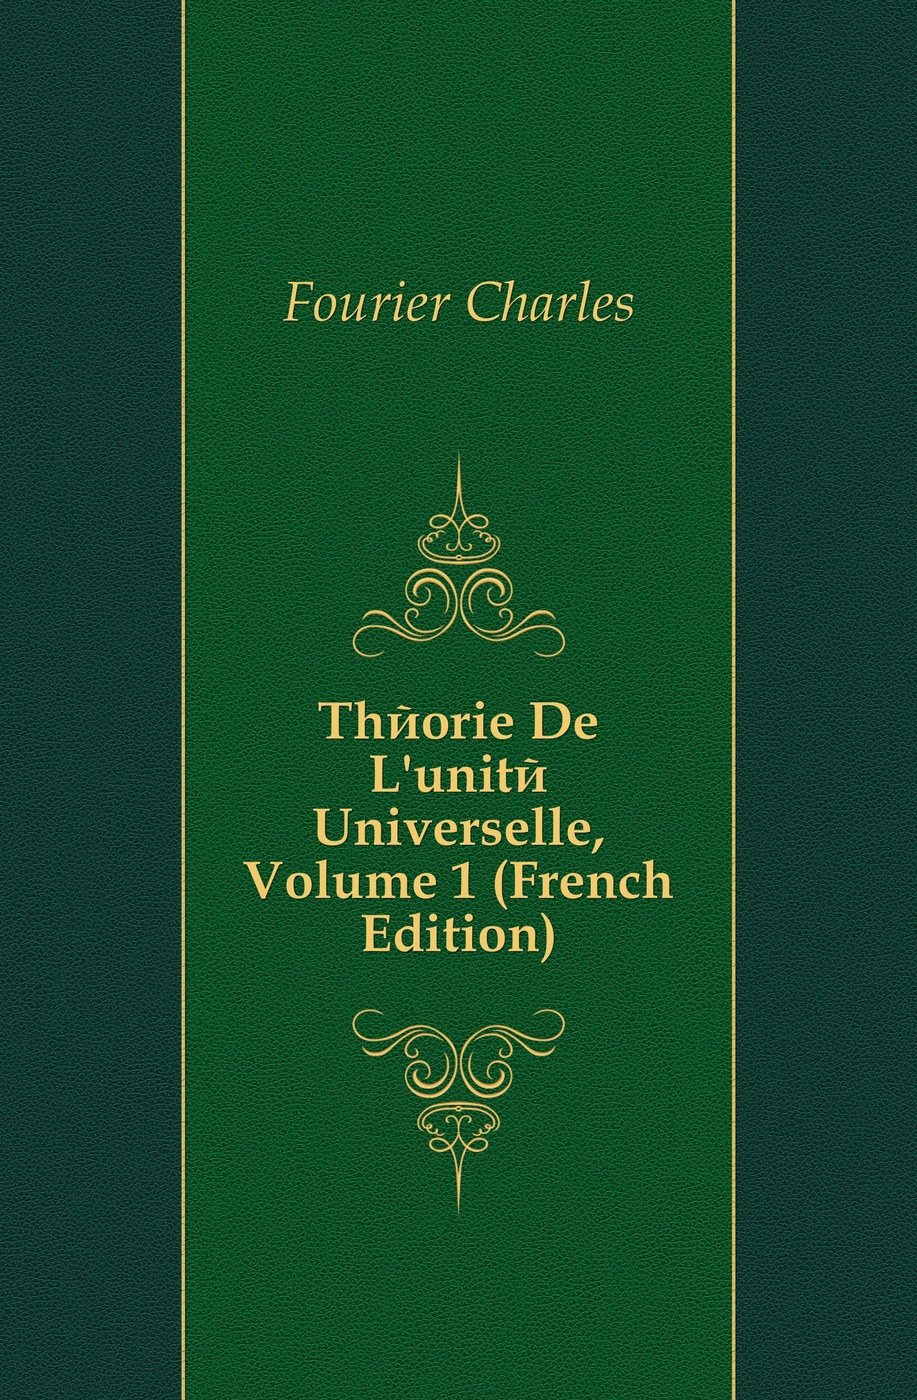 Fourier Charles Theorie De L'unite Universelle, Volume 1 (French Edition) charles blanc les beaux arts a l exposition universelle de 1878 french edition